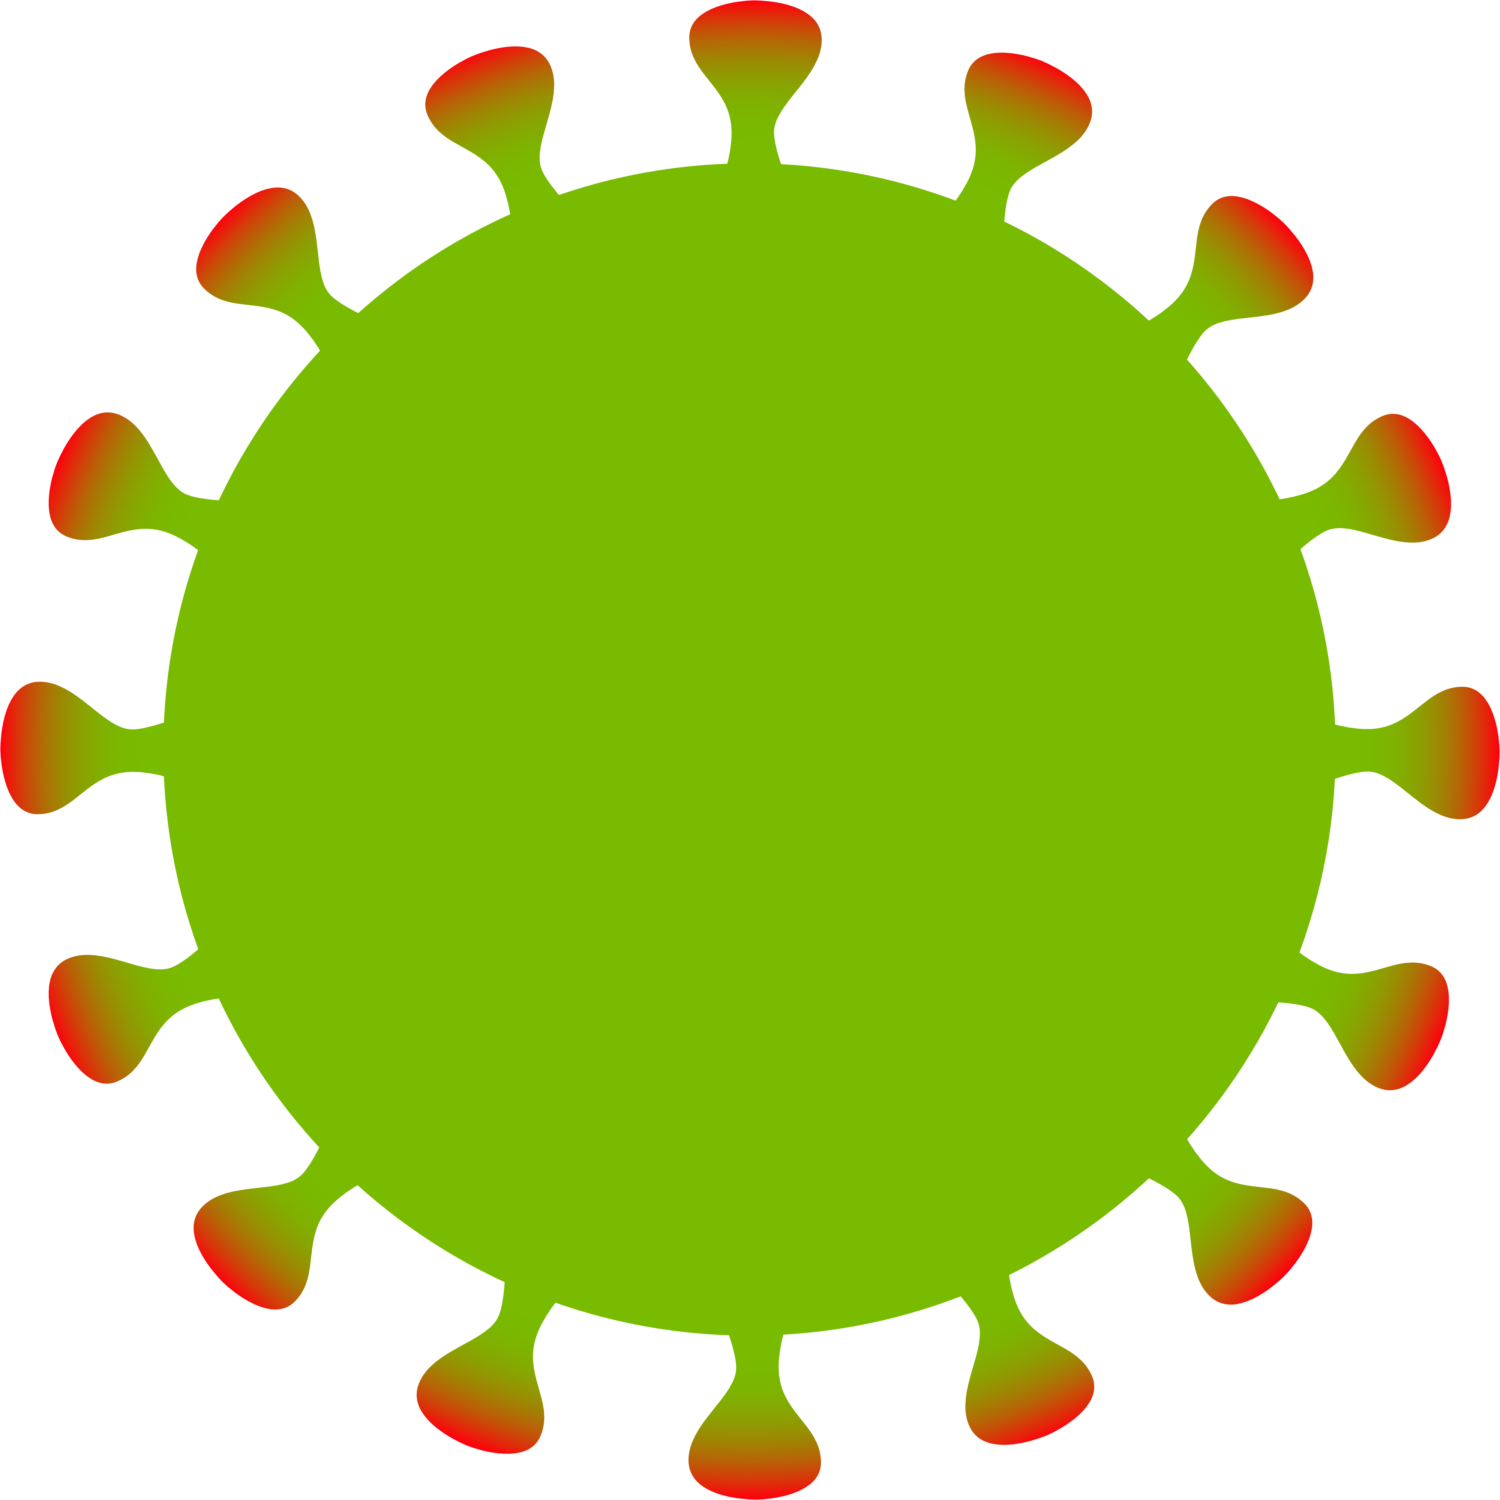 Free image from iXimus.de: Coronavirus, green, red, cropped, #0000131